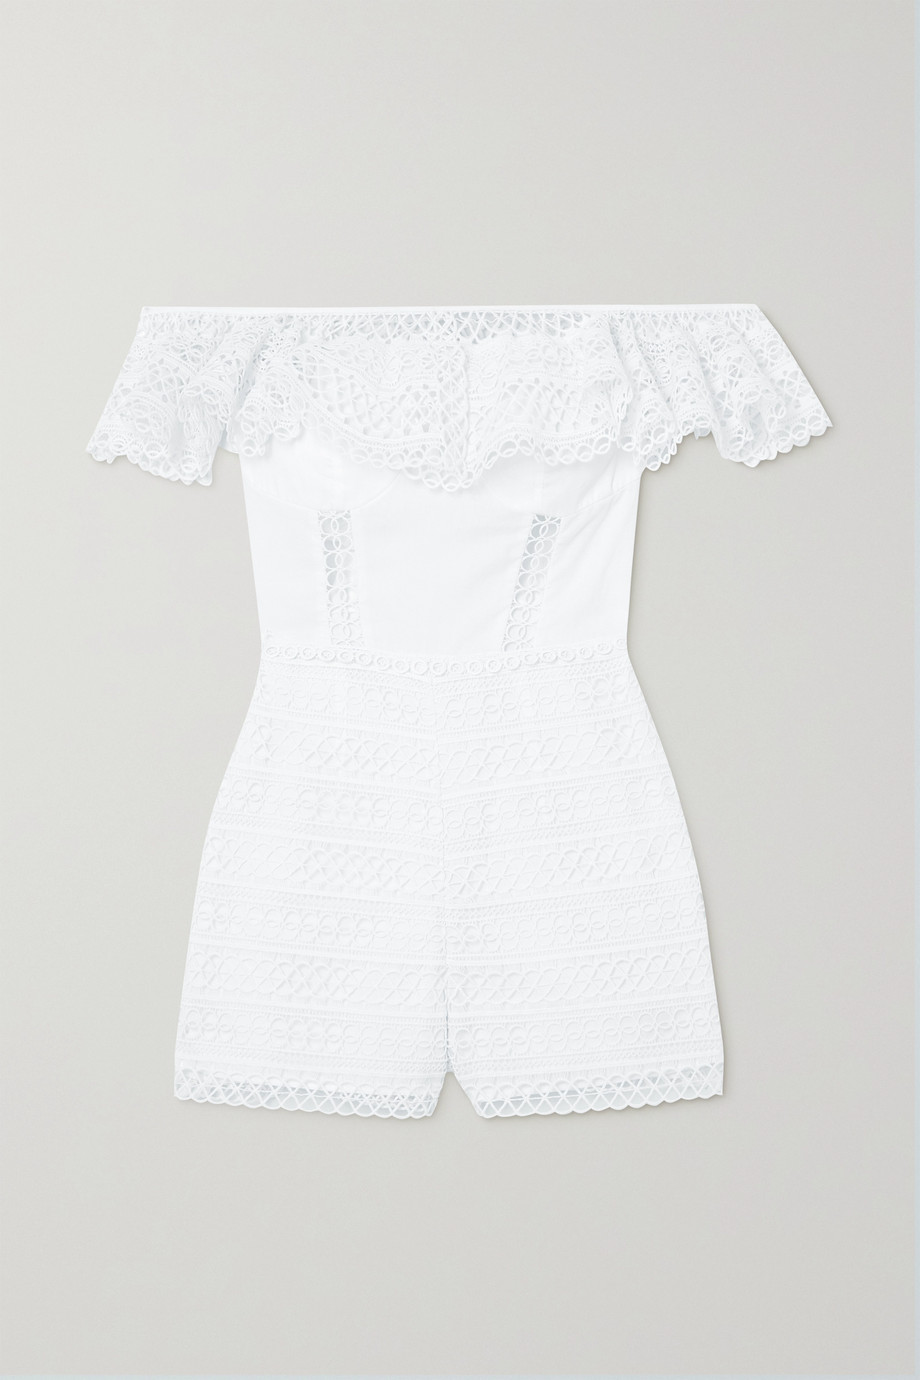 CHARO RUIZ Cotton-blend poplin and crocheted lace playsuit